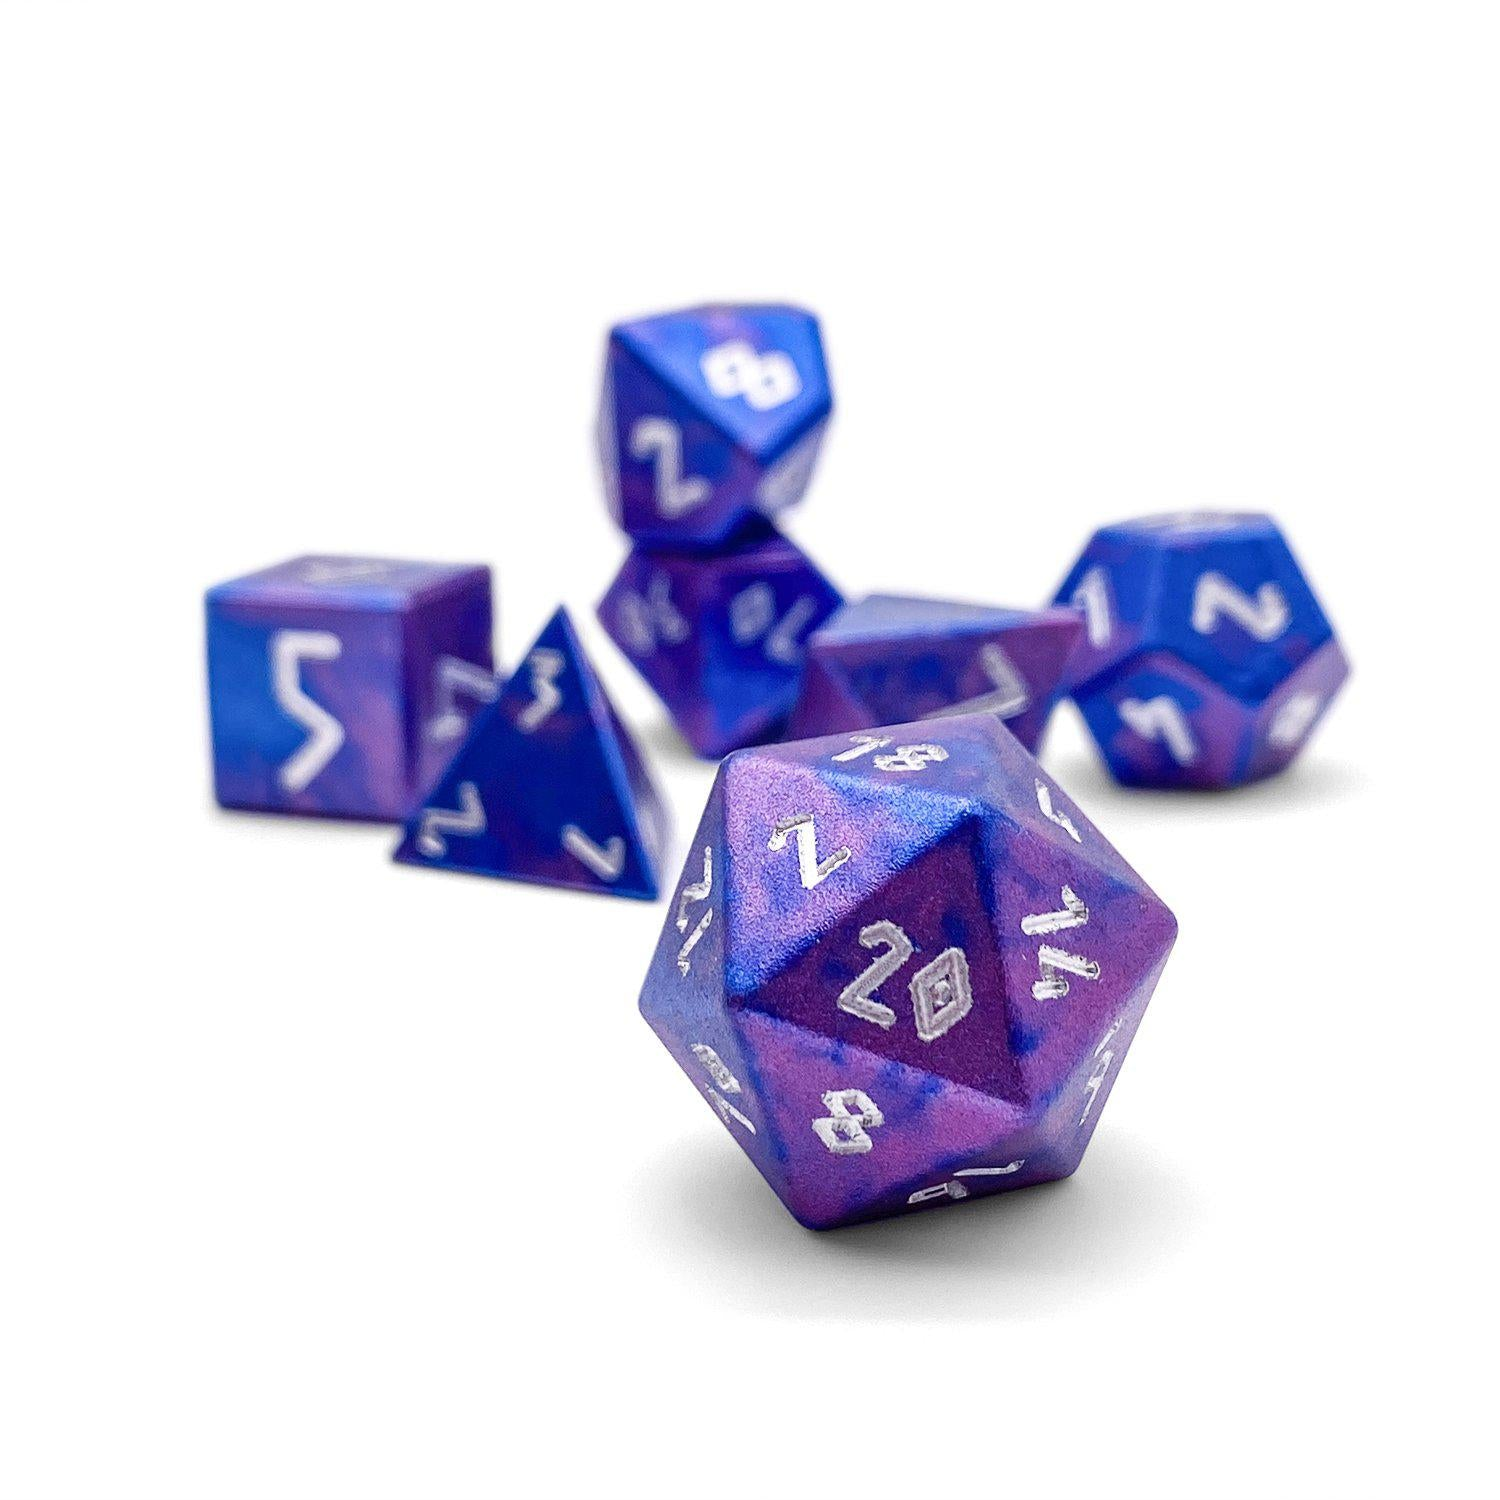 Galactic Conquest - Wondrous Dice Set of 7 RPG Dice by Norse Foundry Precision Polyhedral Dice Set